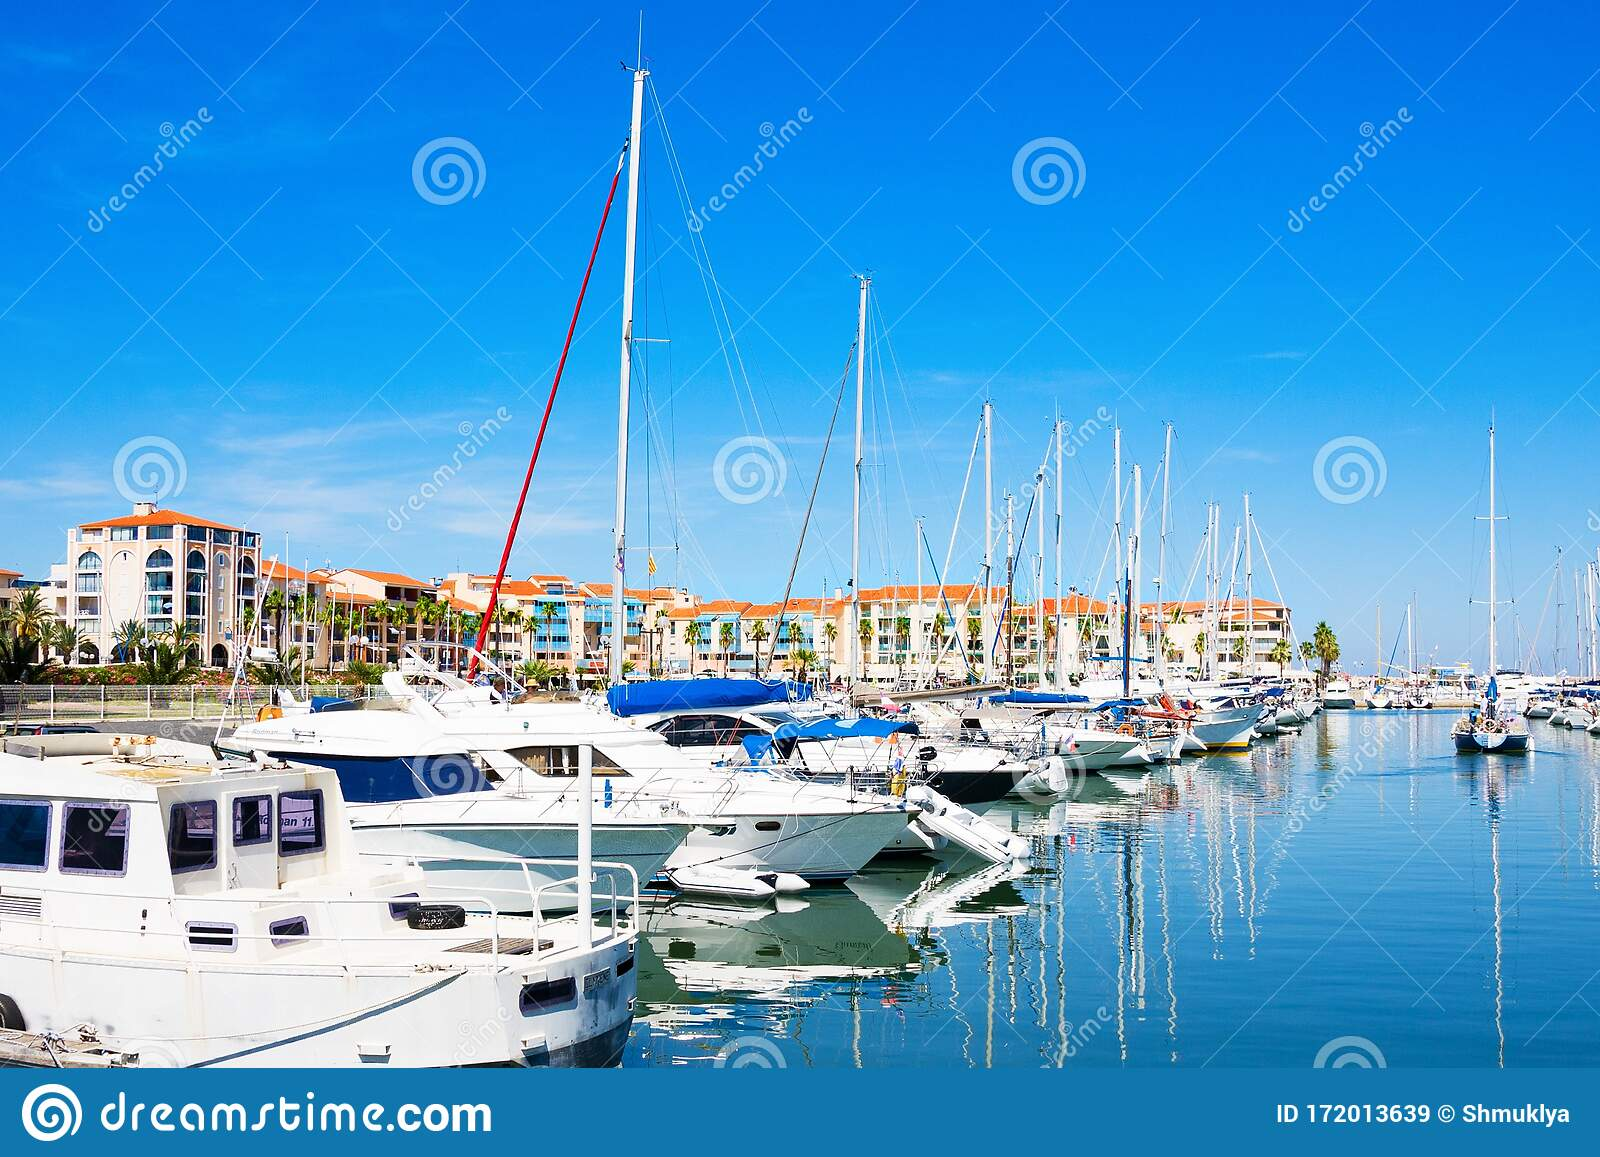 Port Argeles Sur Mer In Pyrenees Orientales Department Languedoc Roussillon Region In Southern France Editorial Stock Image Image Of Mast Europe 172013639